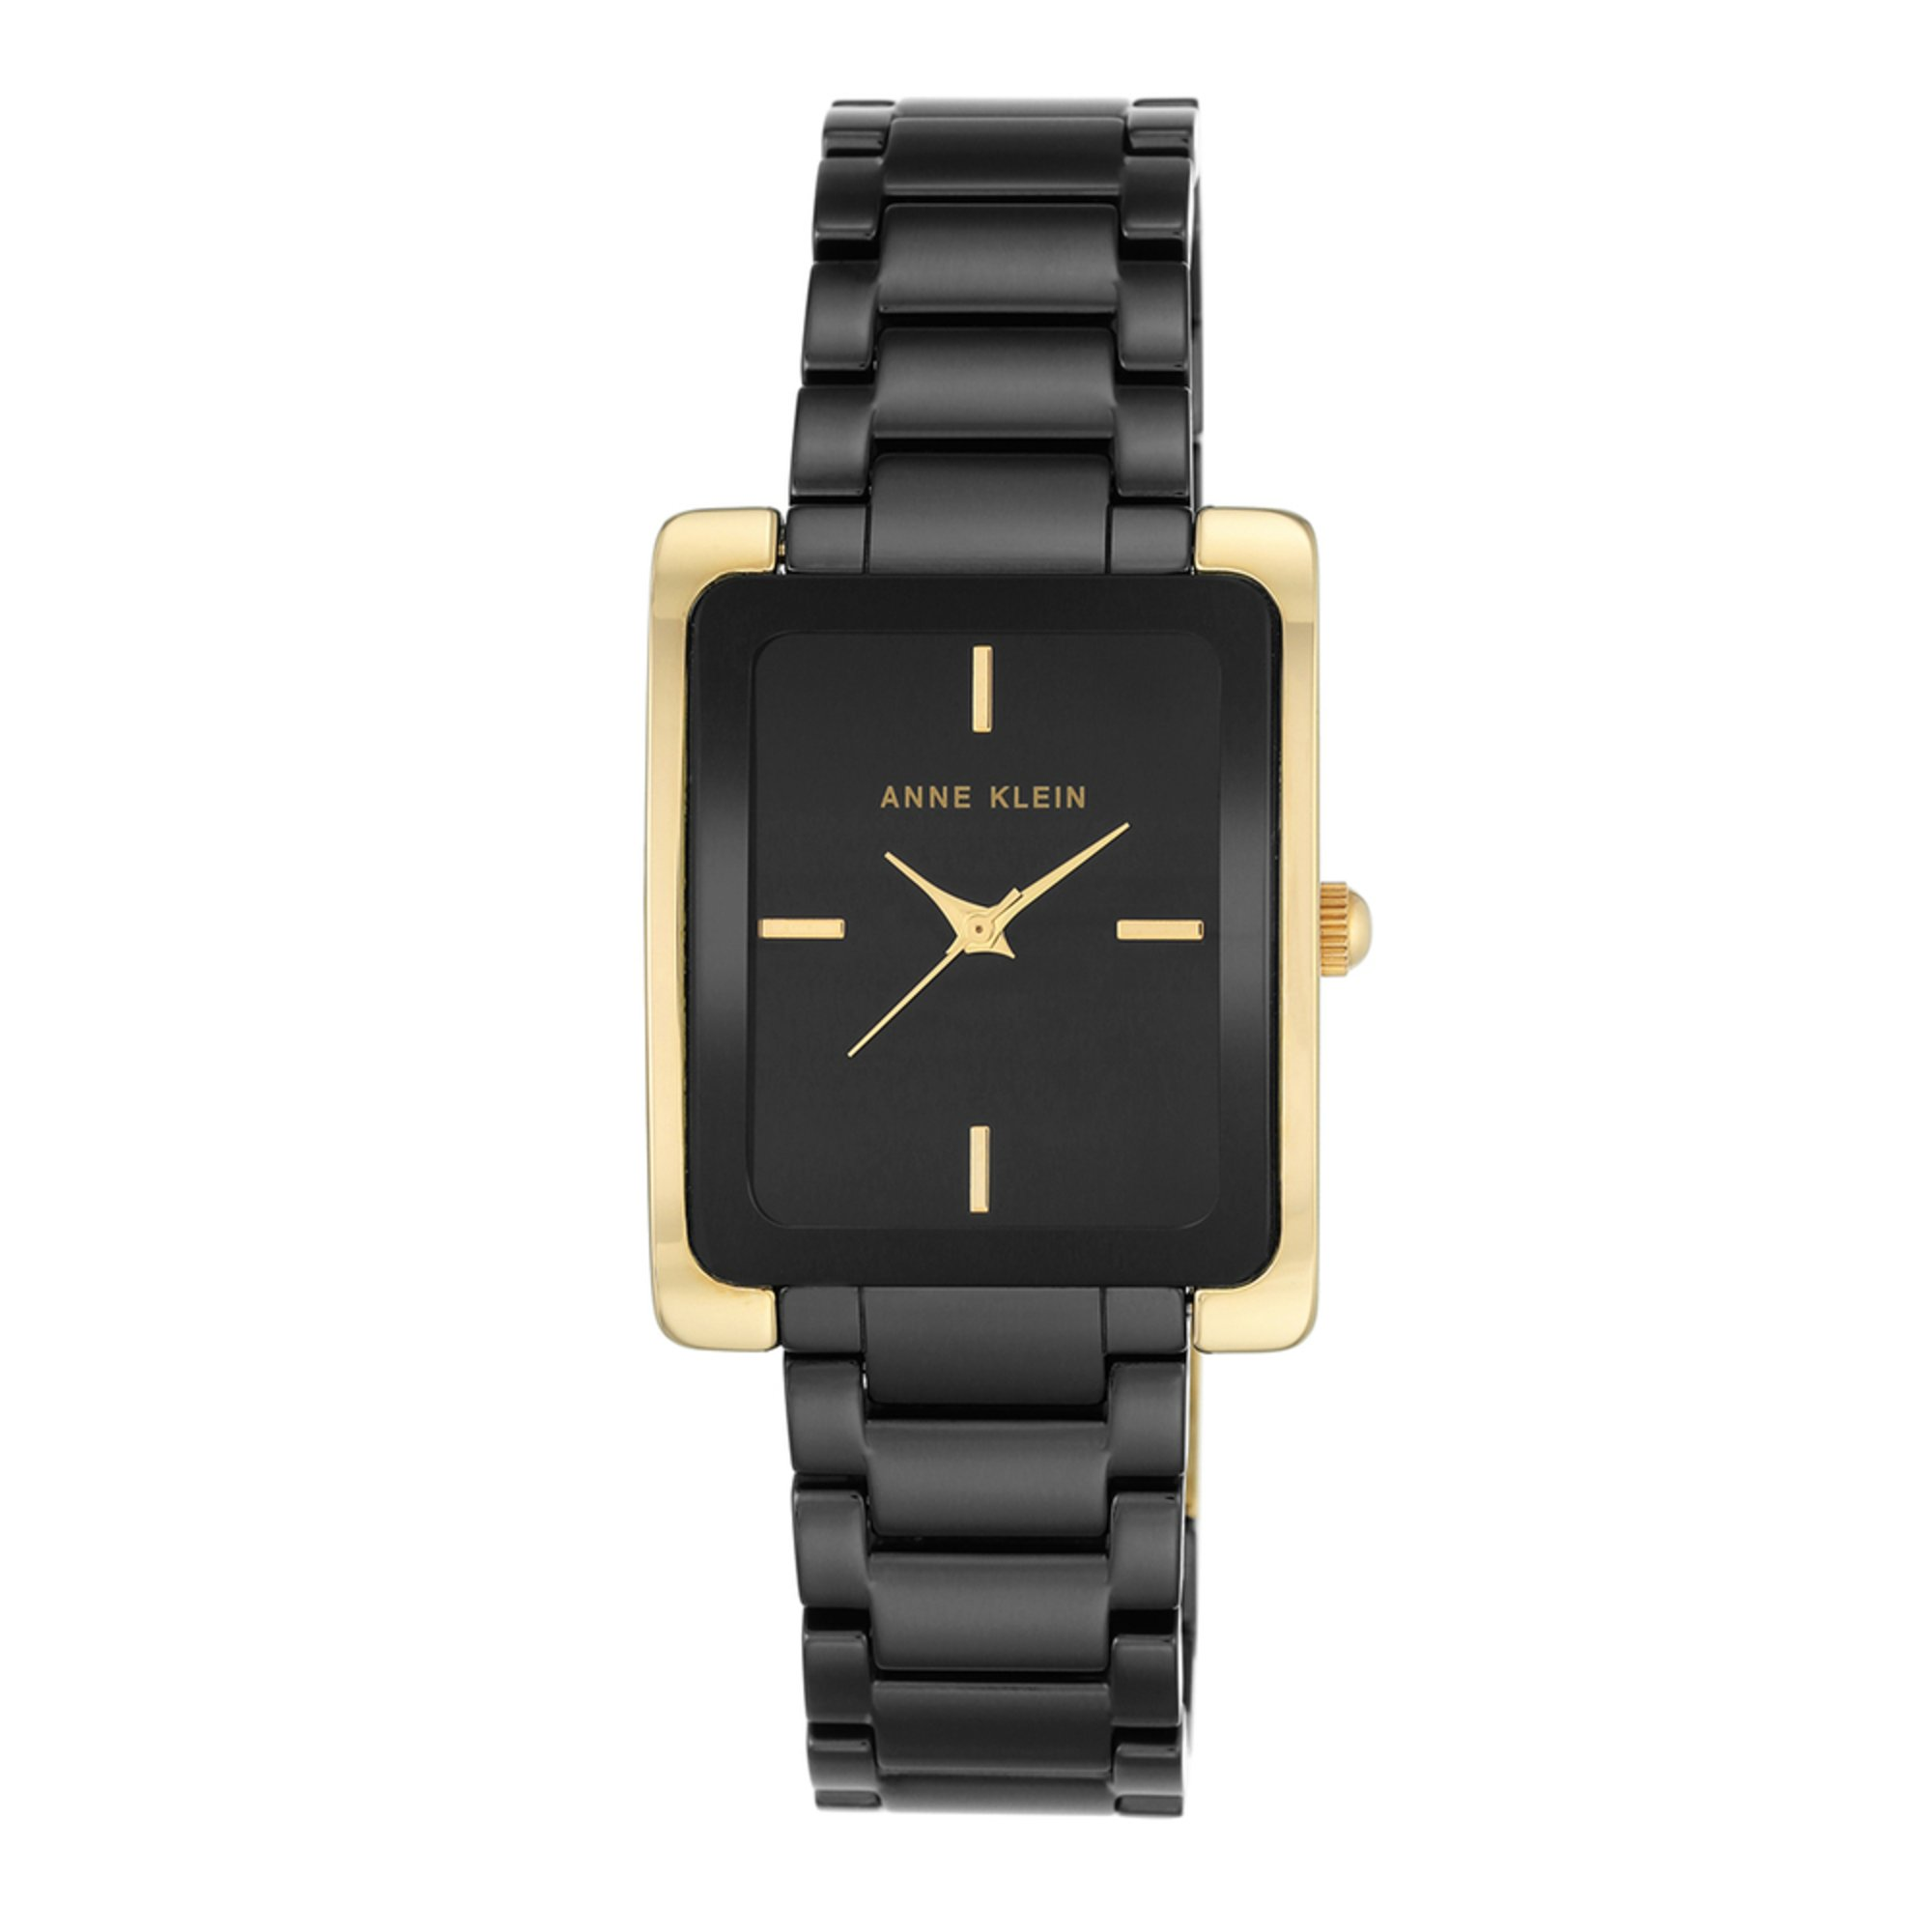 Anne Klein Women S Rectangular Black Gold Watch 28mm